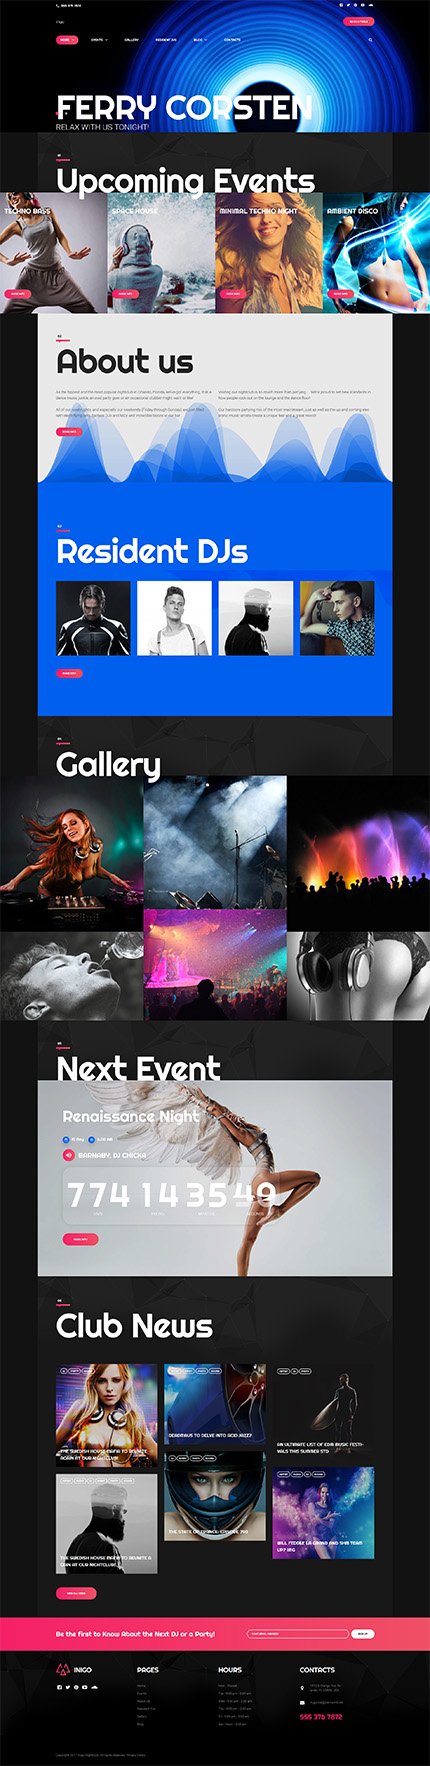 Night Club Most Popular website inspirations at your coffee break? Browse for more WordPress #templates! // Regular price: $75 // Sources available:.PHP, This theme is widgetized #Night Club #Most Popular #WordPress